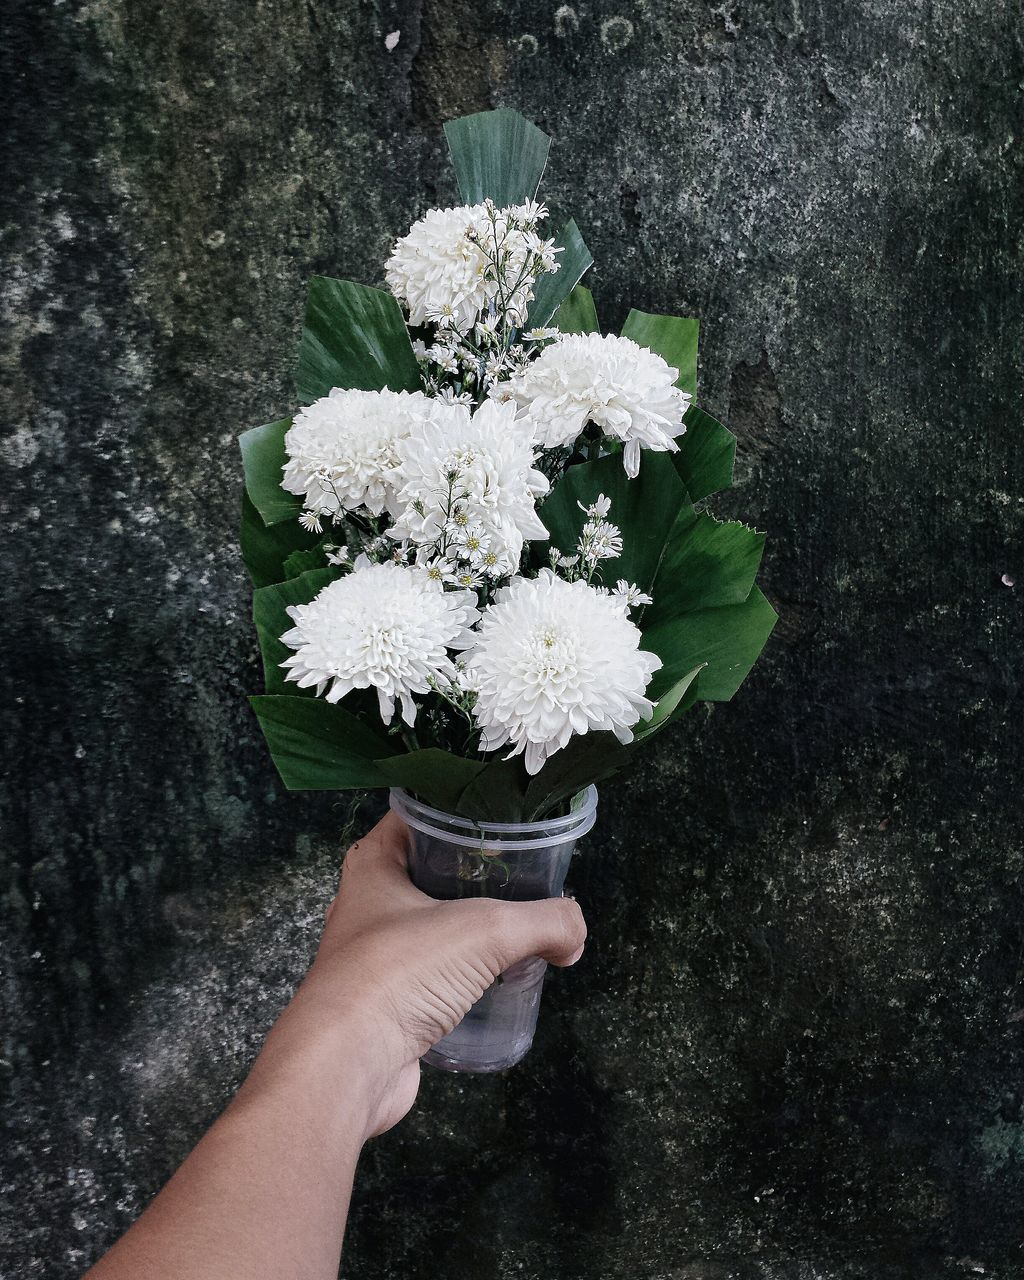 human hand, human body part, holding, flower, real people, white color, one person, freshness, outdoors, nature, fragility, day, flower head, beauty in nature, close-up, people